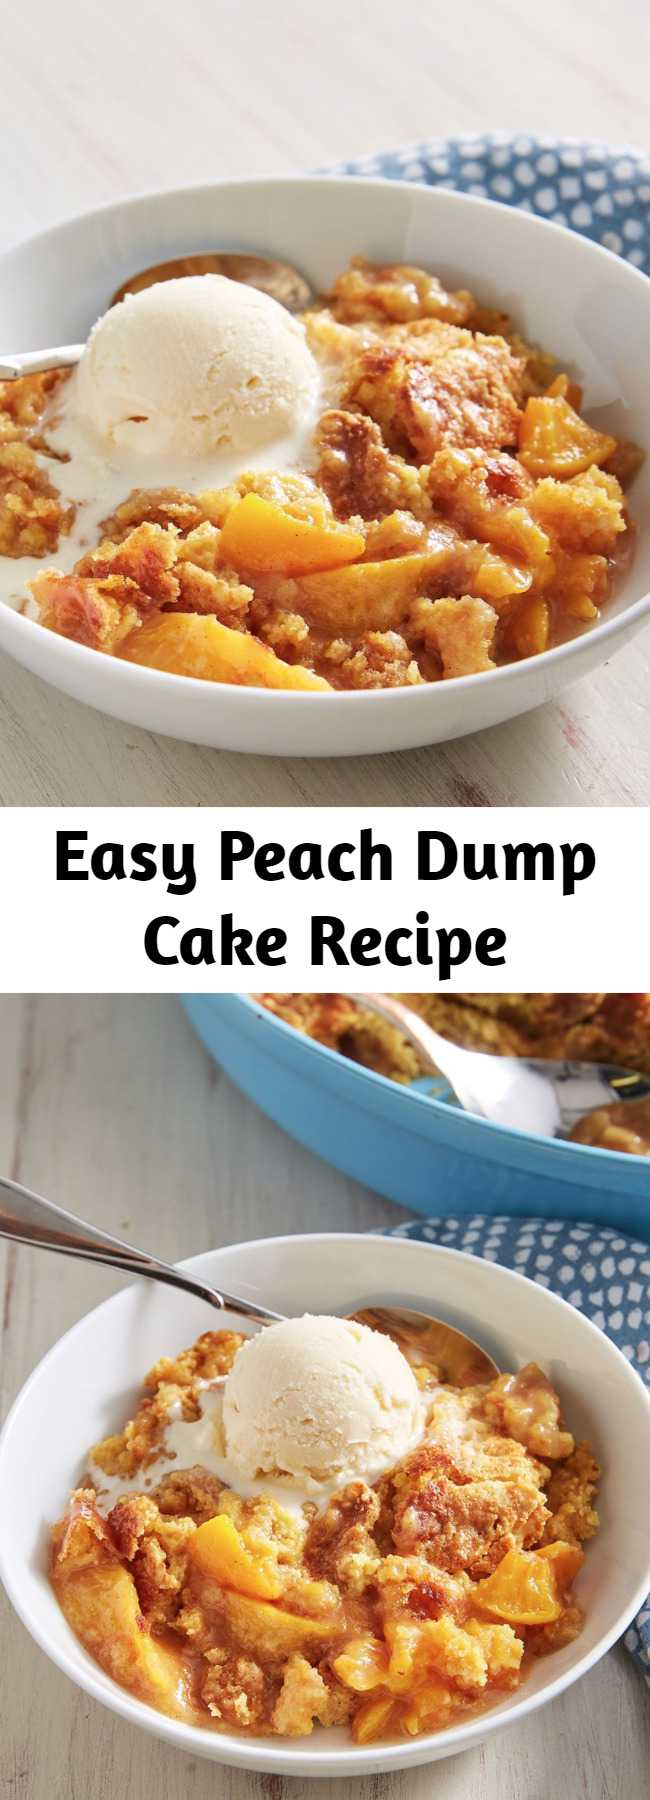 Easy Peach Dump Cake Recipe - Peach Dump Cake is as easy as can be with less than 10 minutes of hands-on time.